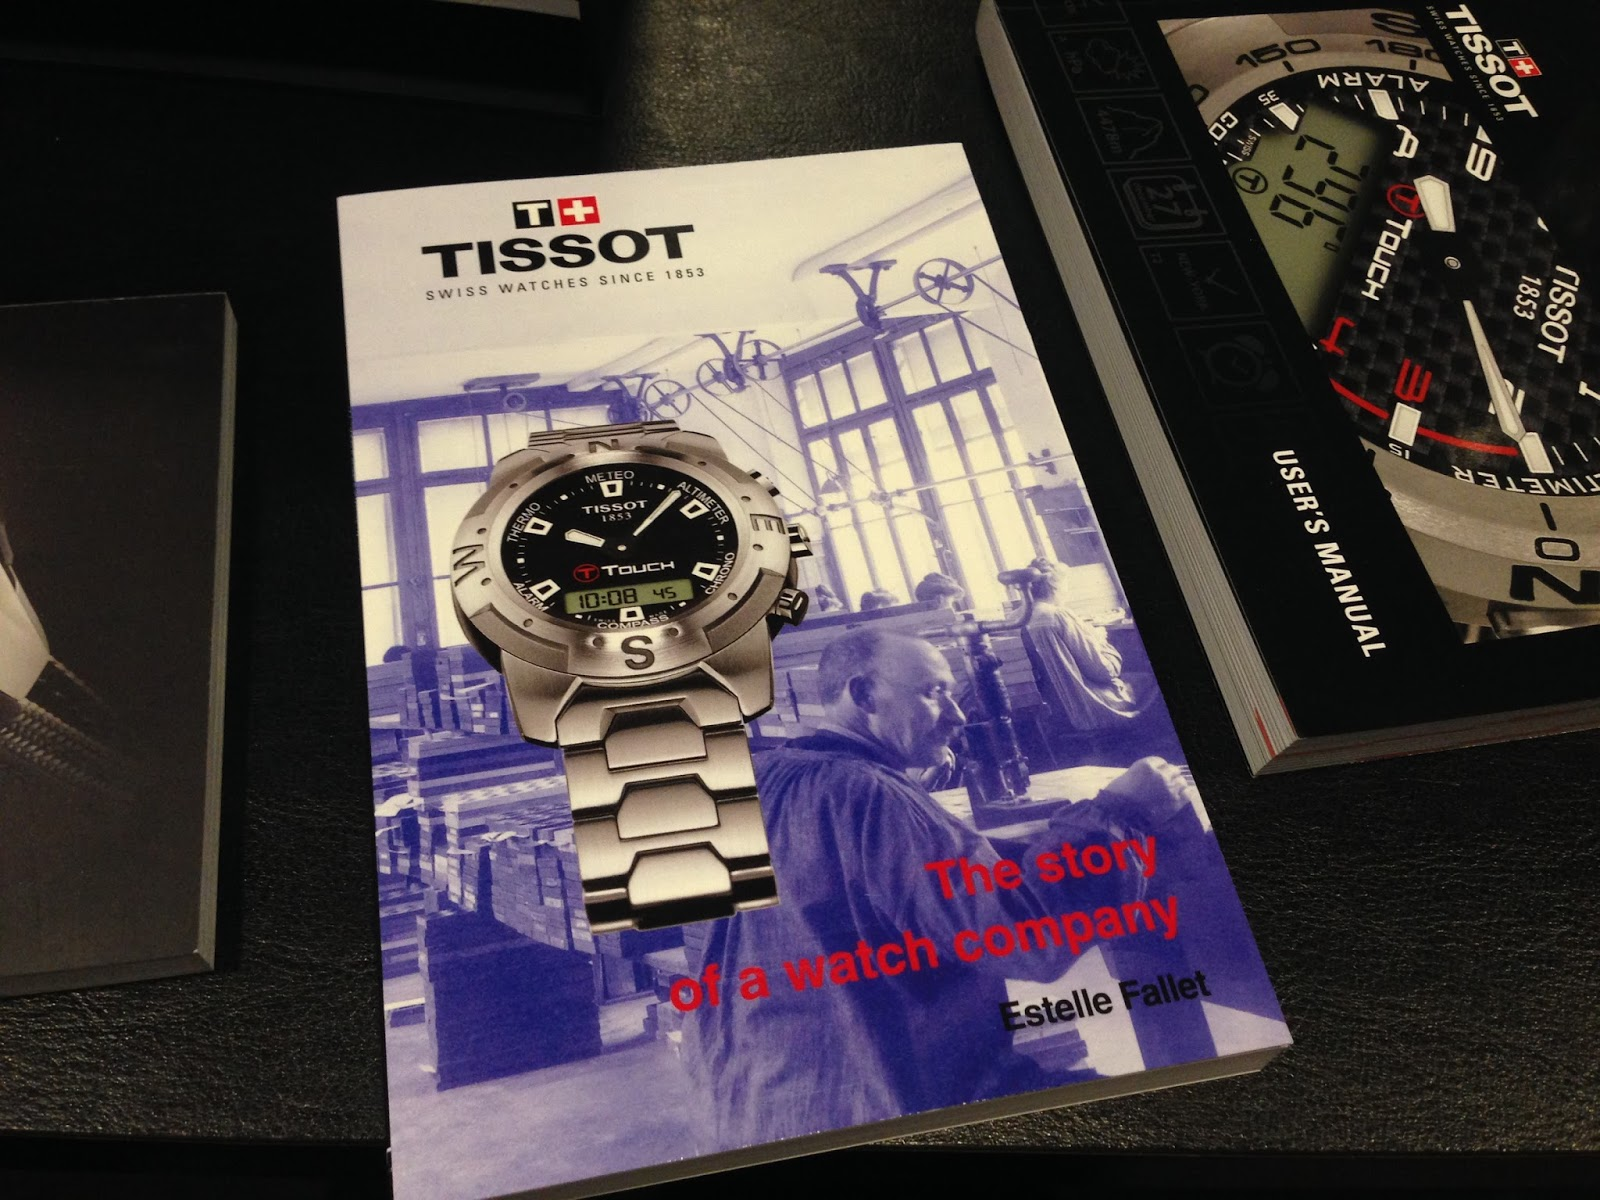 tissot 1853 t touch smart watch manual